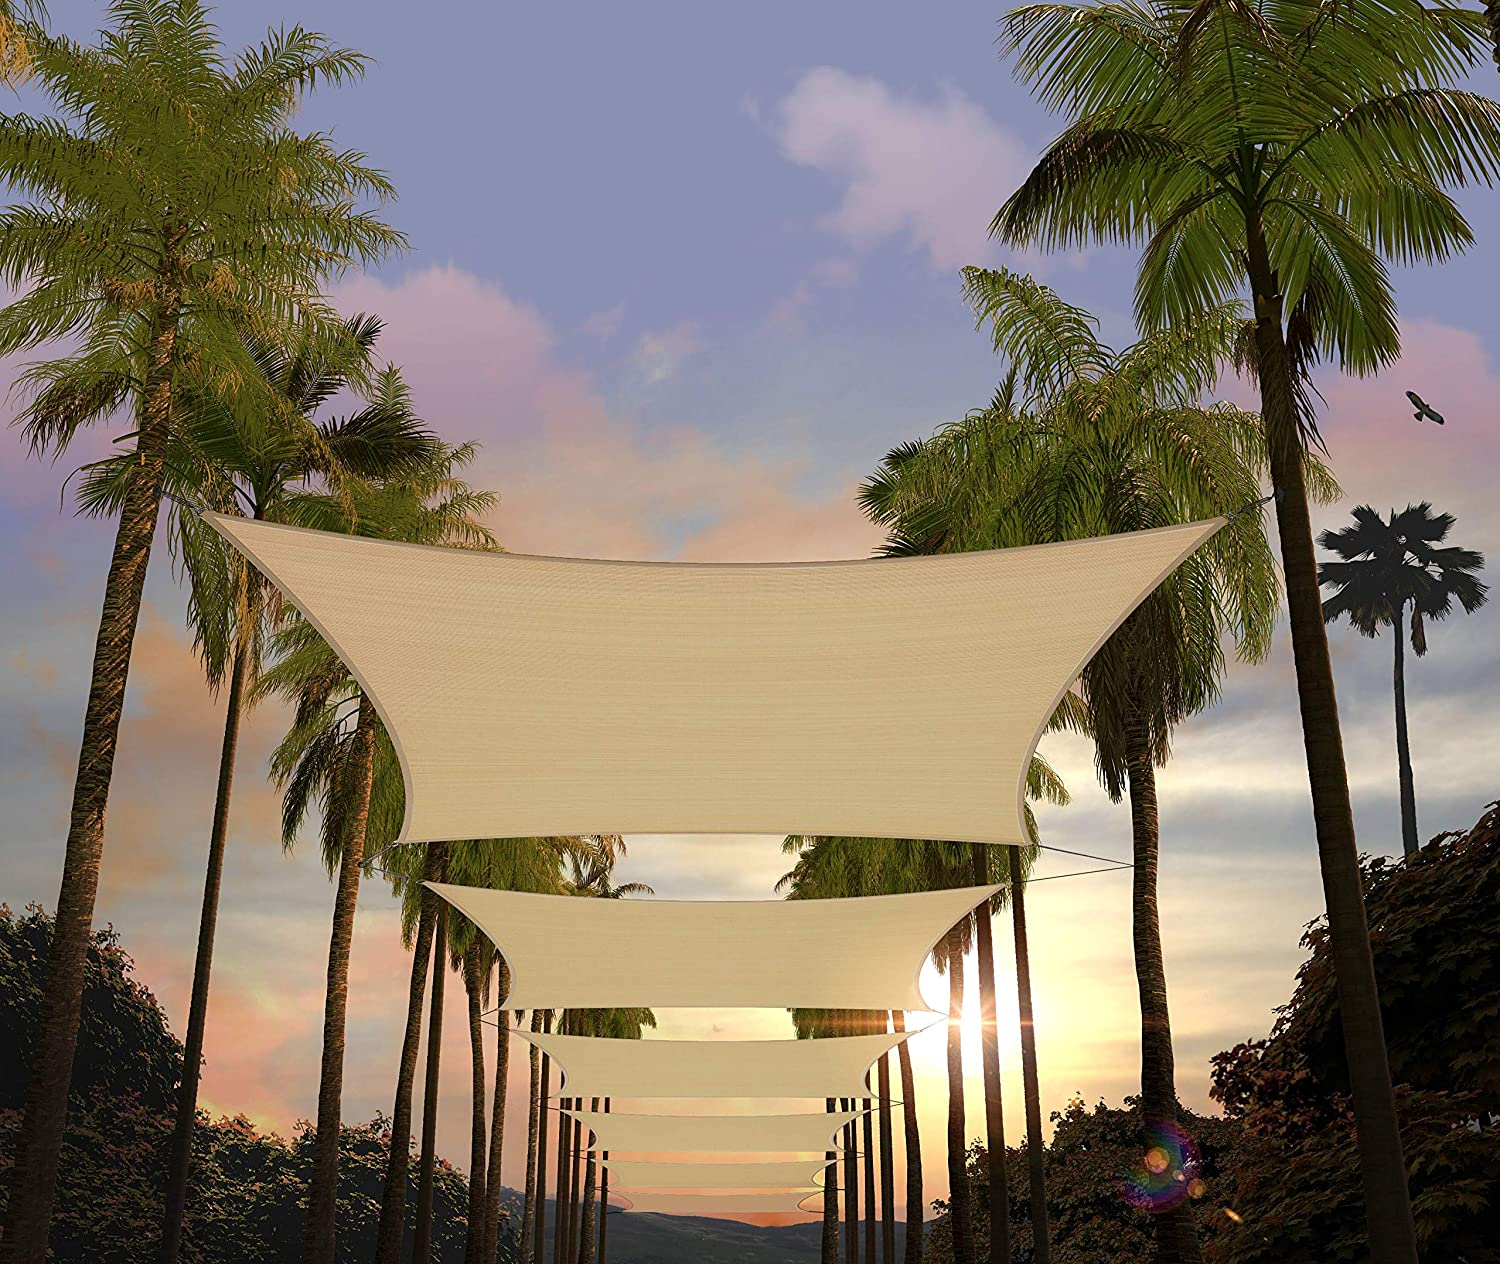 Amgo 14' x 20' Beige Rectangle Sun Shade Sail Canopy Awning Shelter Fabric Screen - UV Block UV Resistant Heavy Duty Commercial Grade - Outdoor Patio Carport - (Available for Custom Sizes)